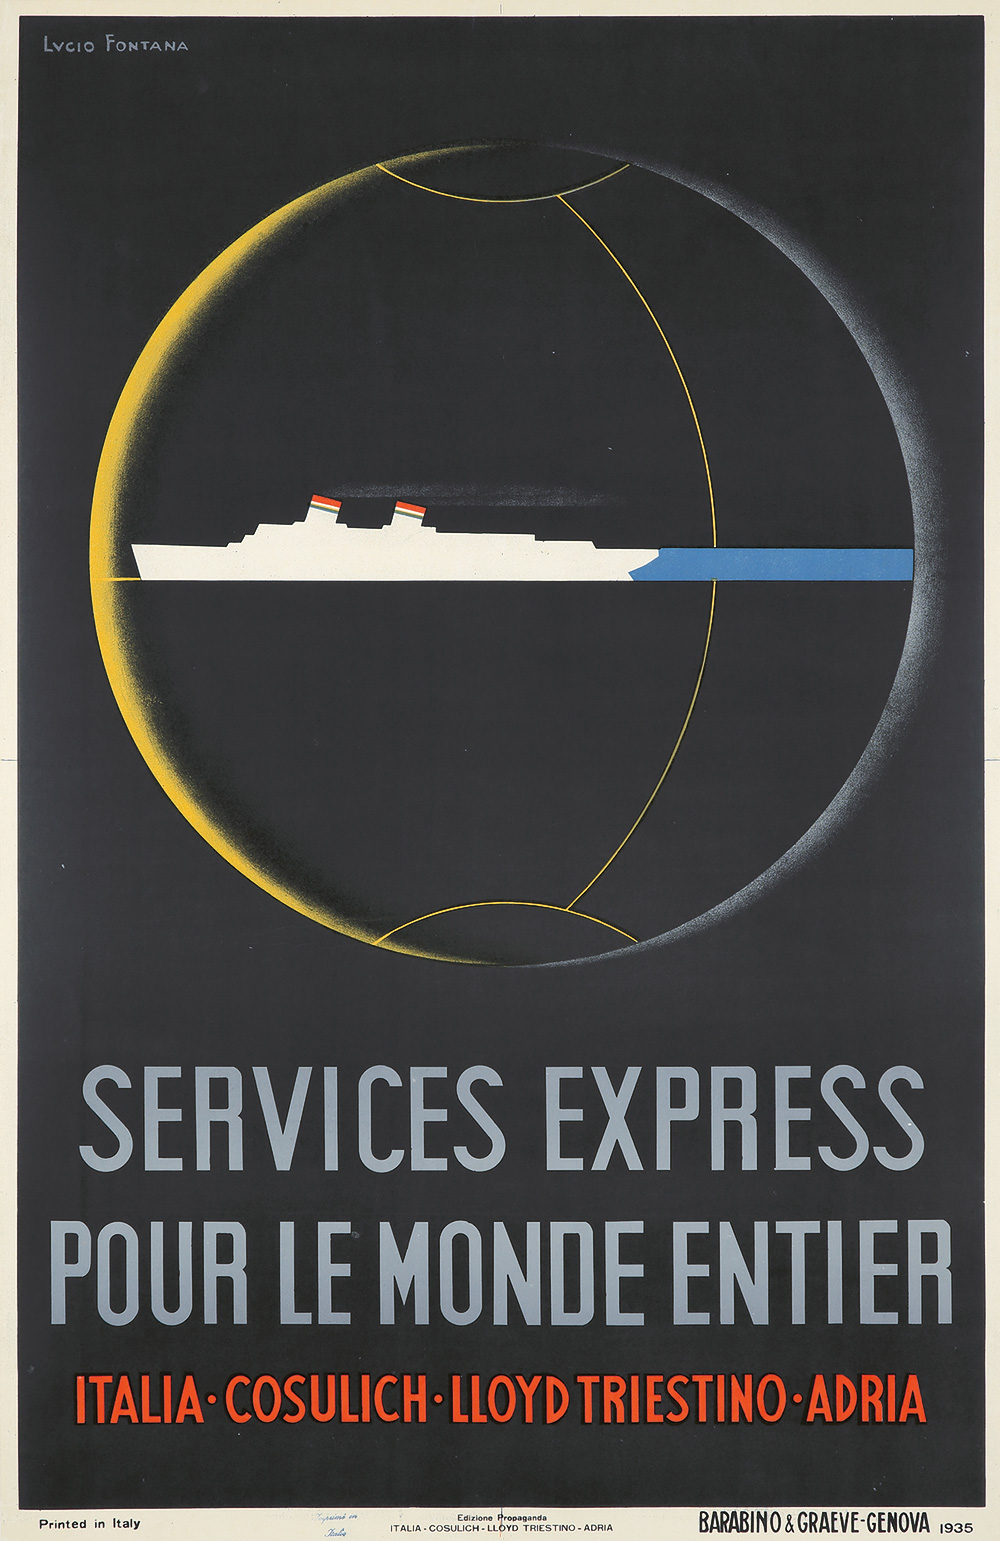 217. Services Express. 1935.